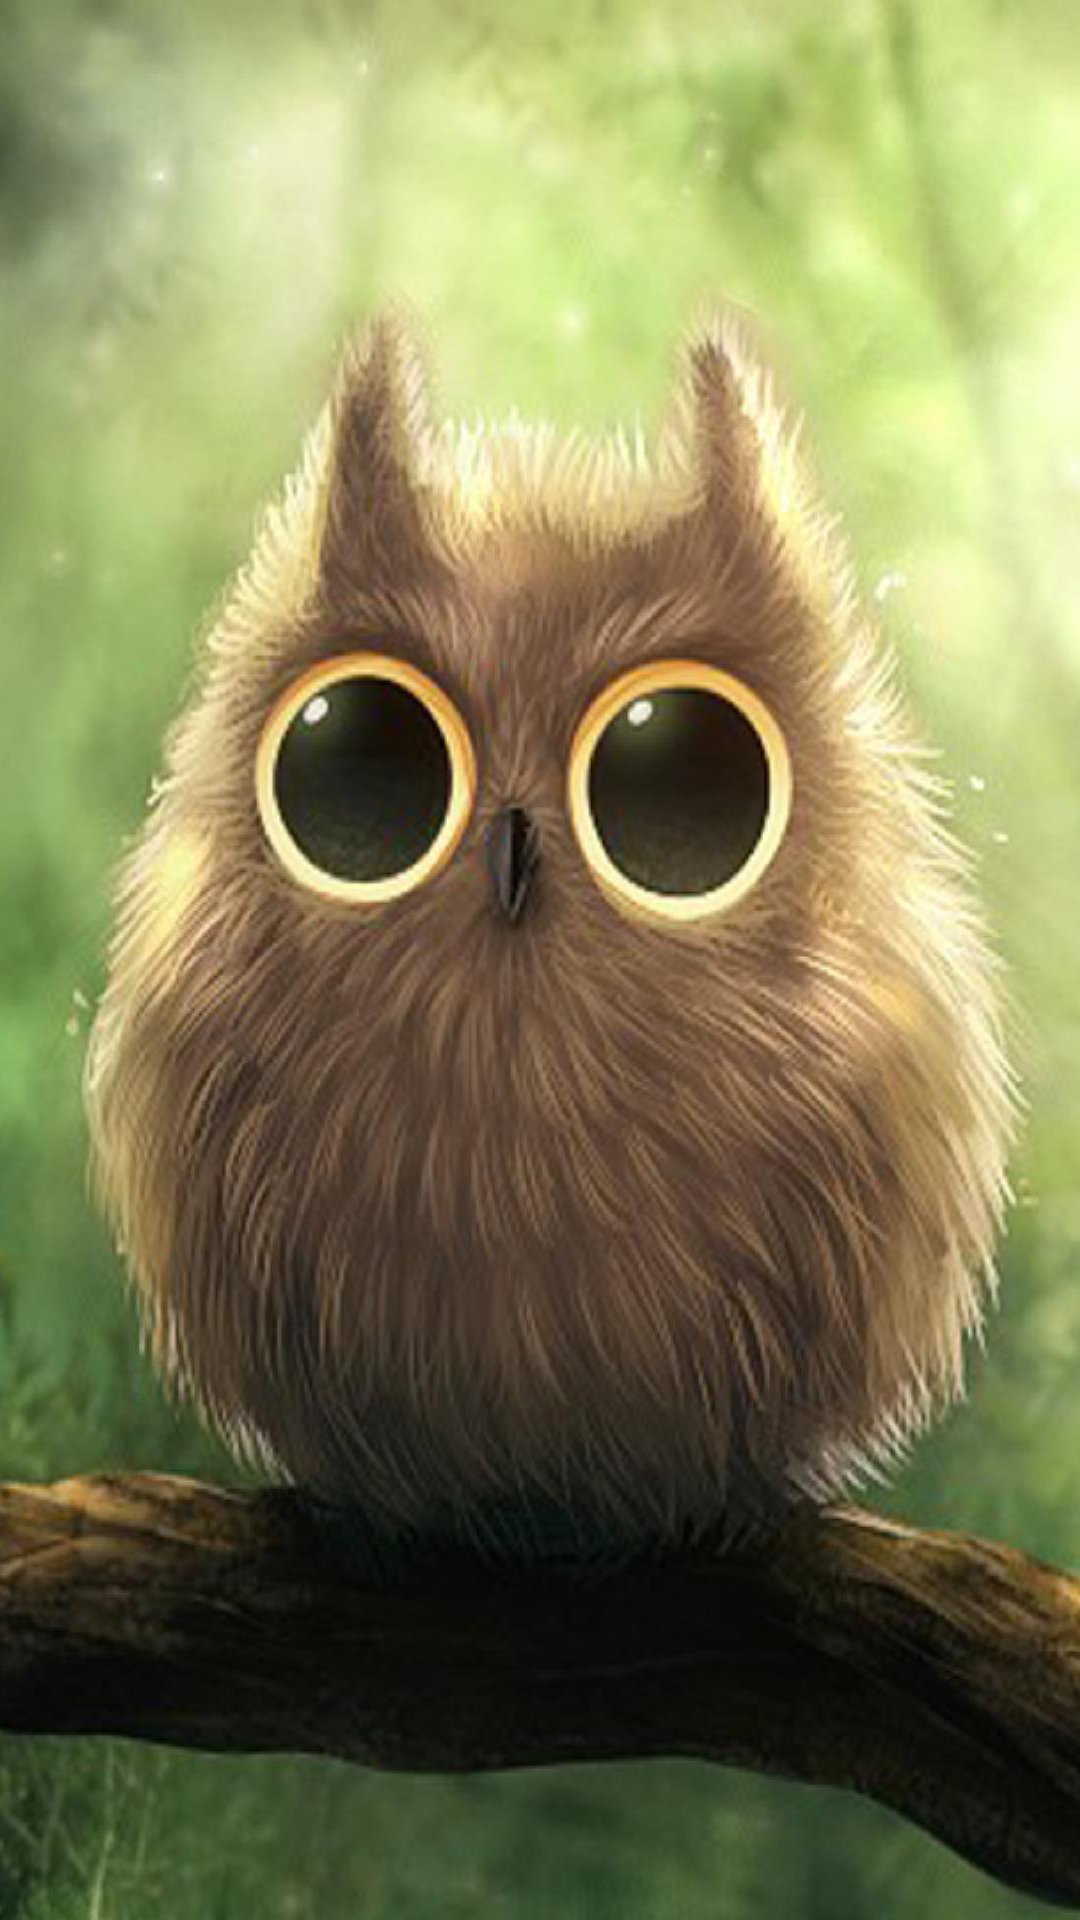 Cute Big Eyes Owl Android Wallpaper download 1080x1920